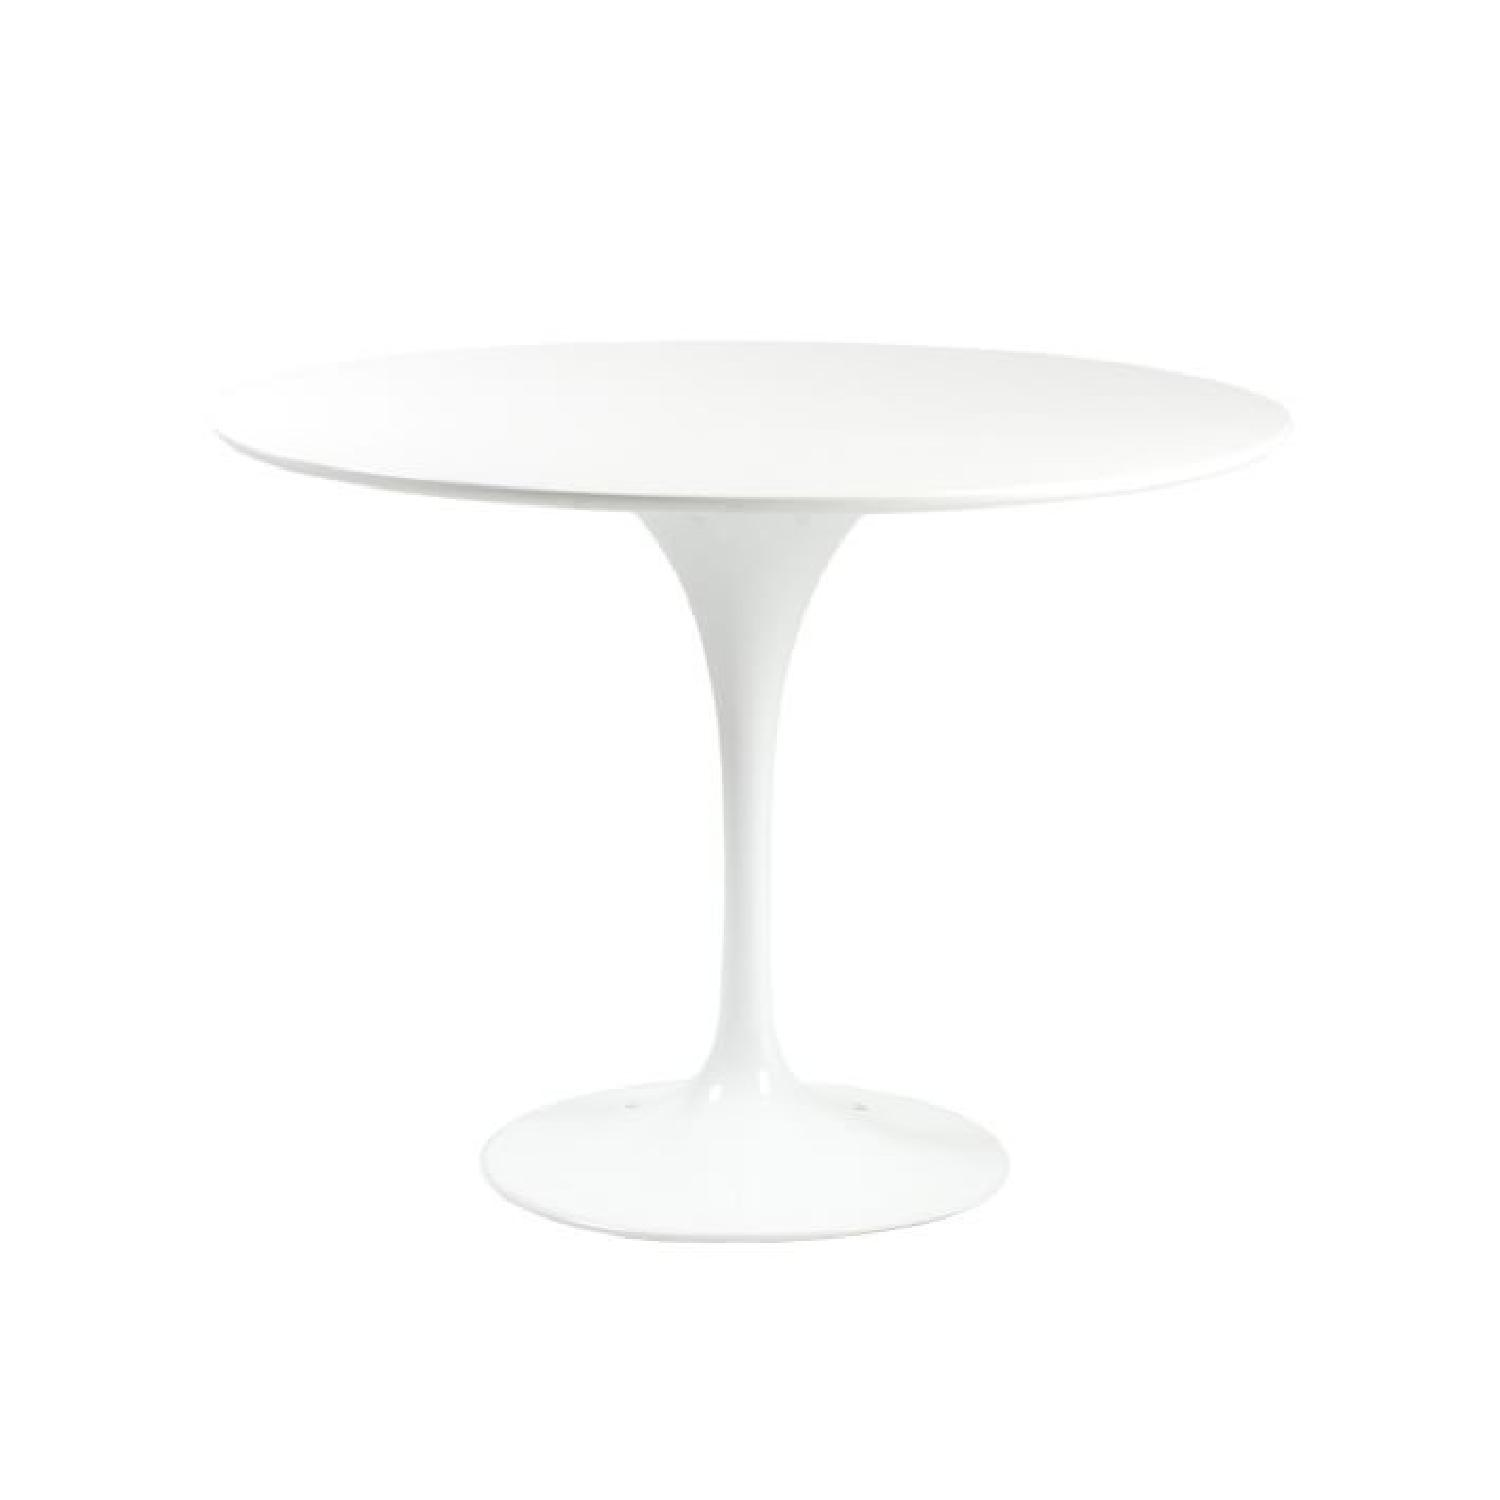 Pottery Barn Round Dining Table - image-0